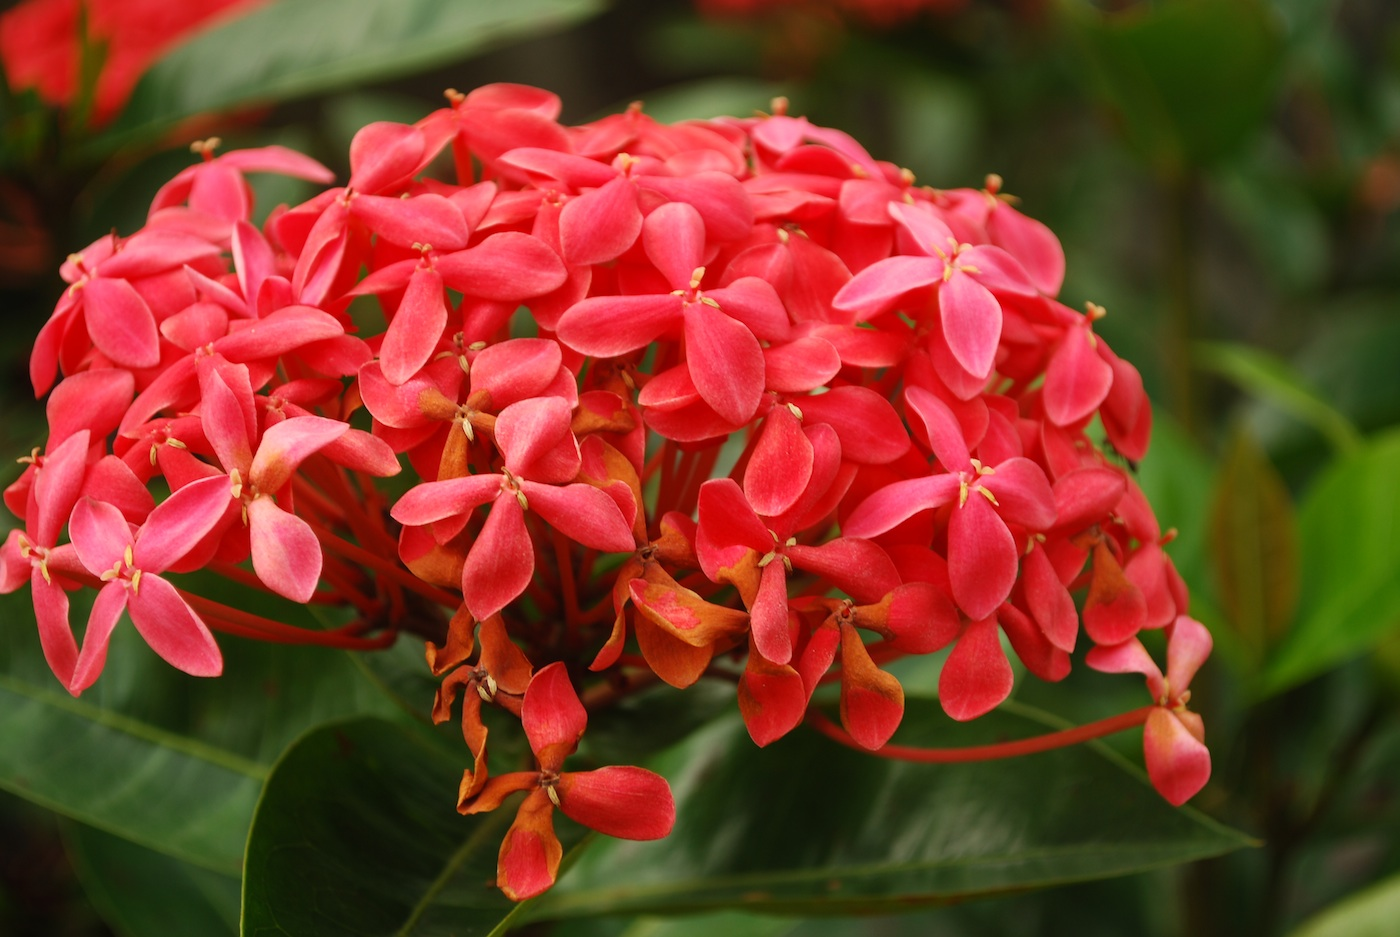 Flowers from Kerala